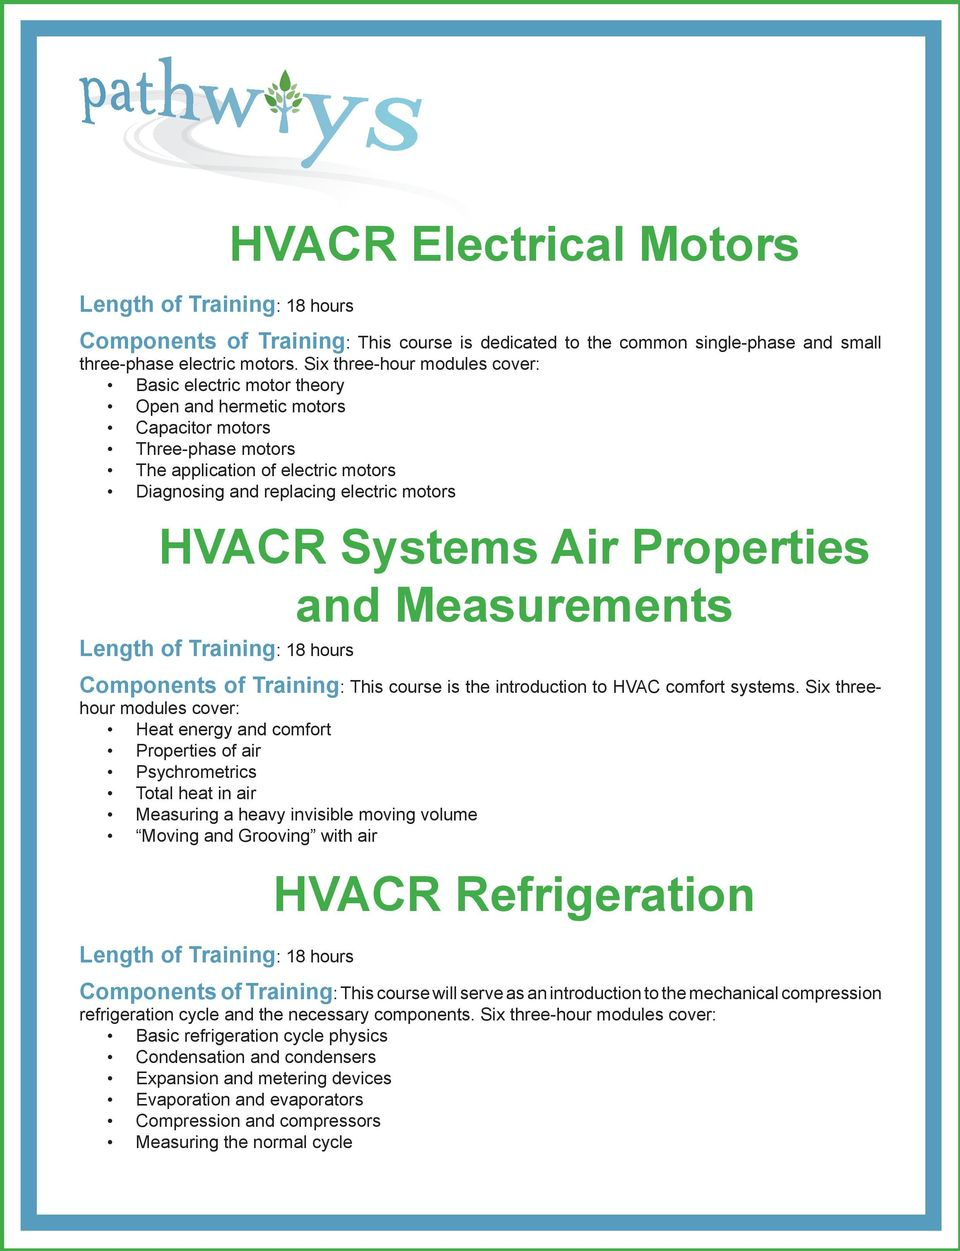 HVACR Systems Air Properties and Measurements Components of Training: This course is the introduction to HVAC comfort systems.